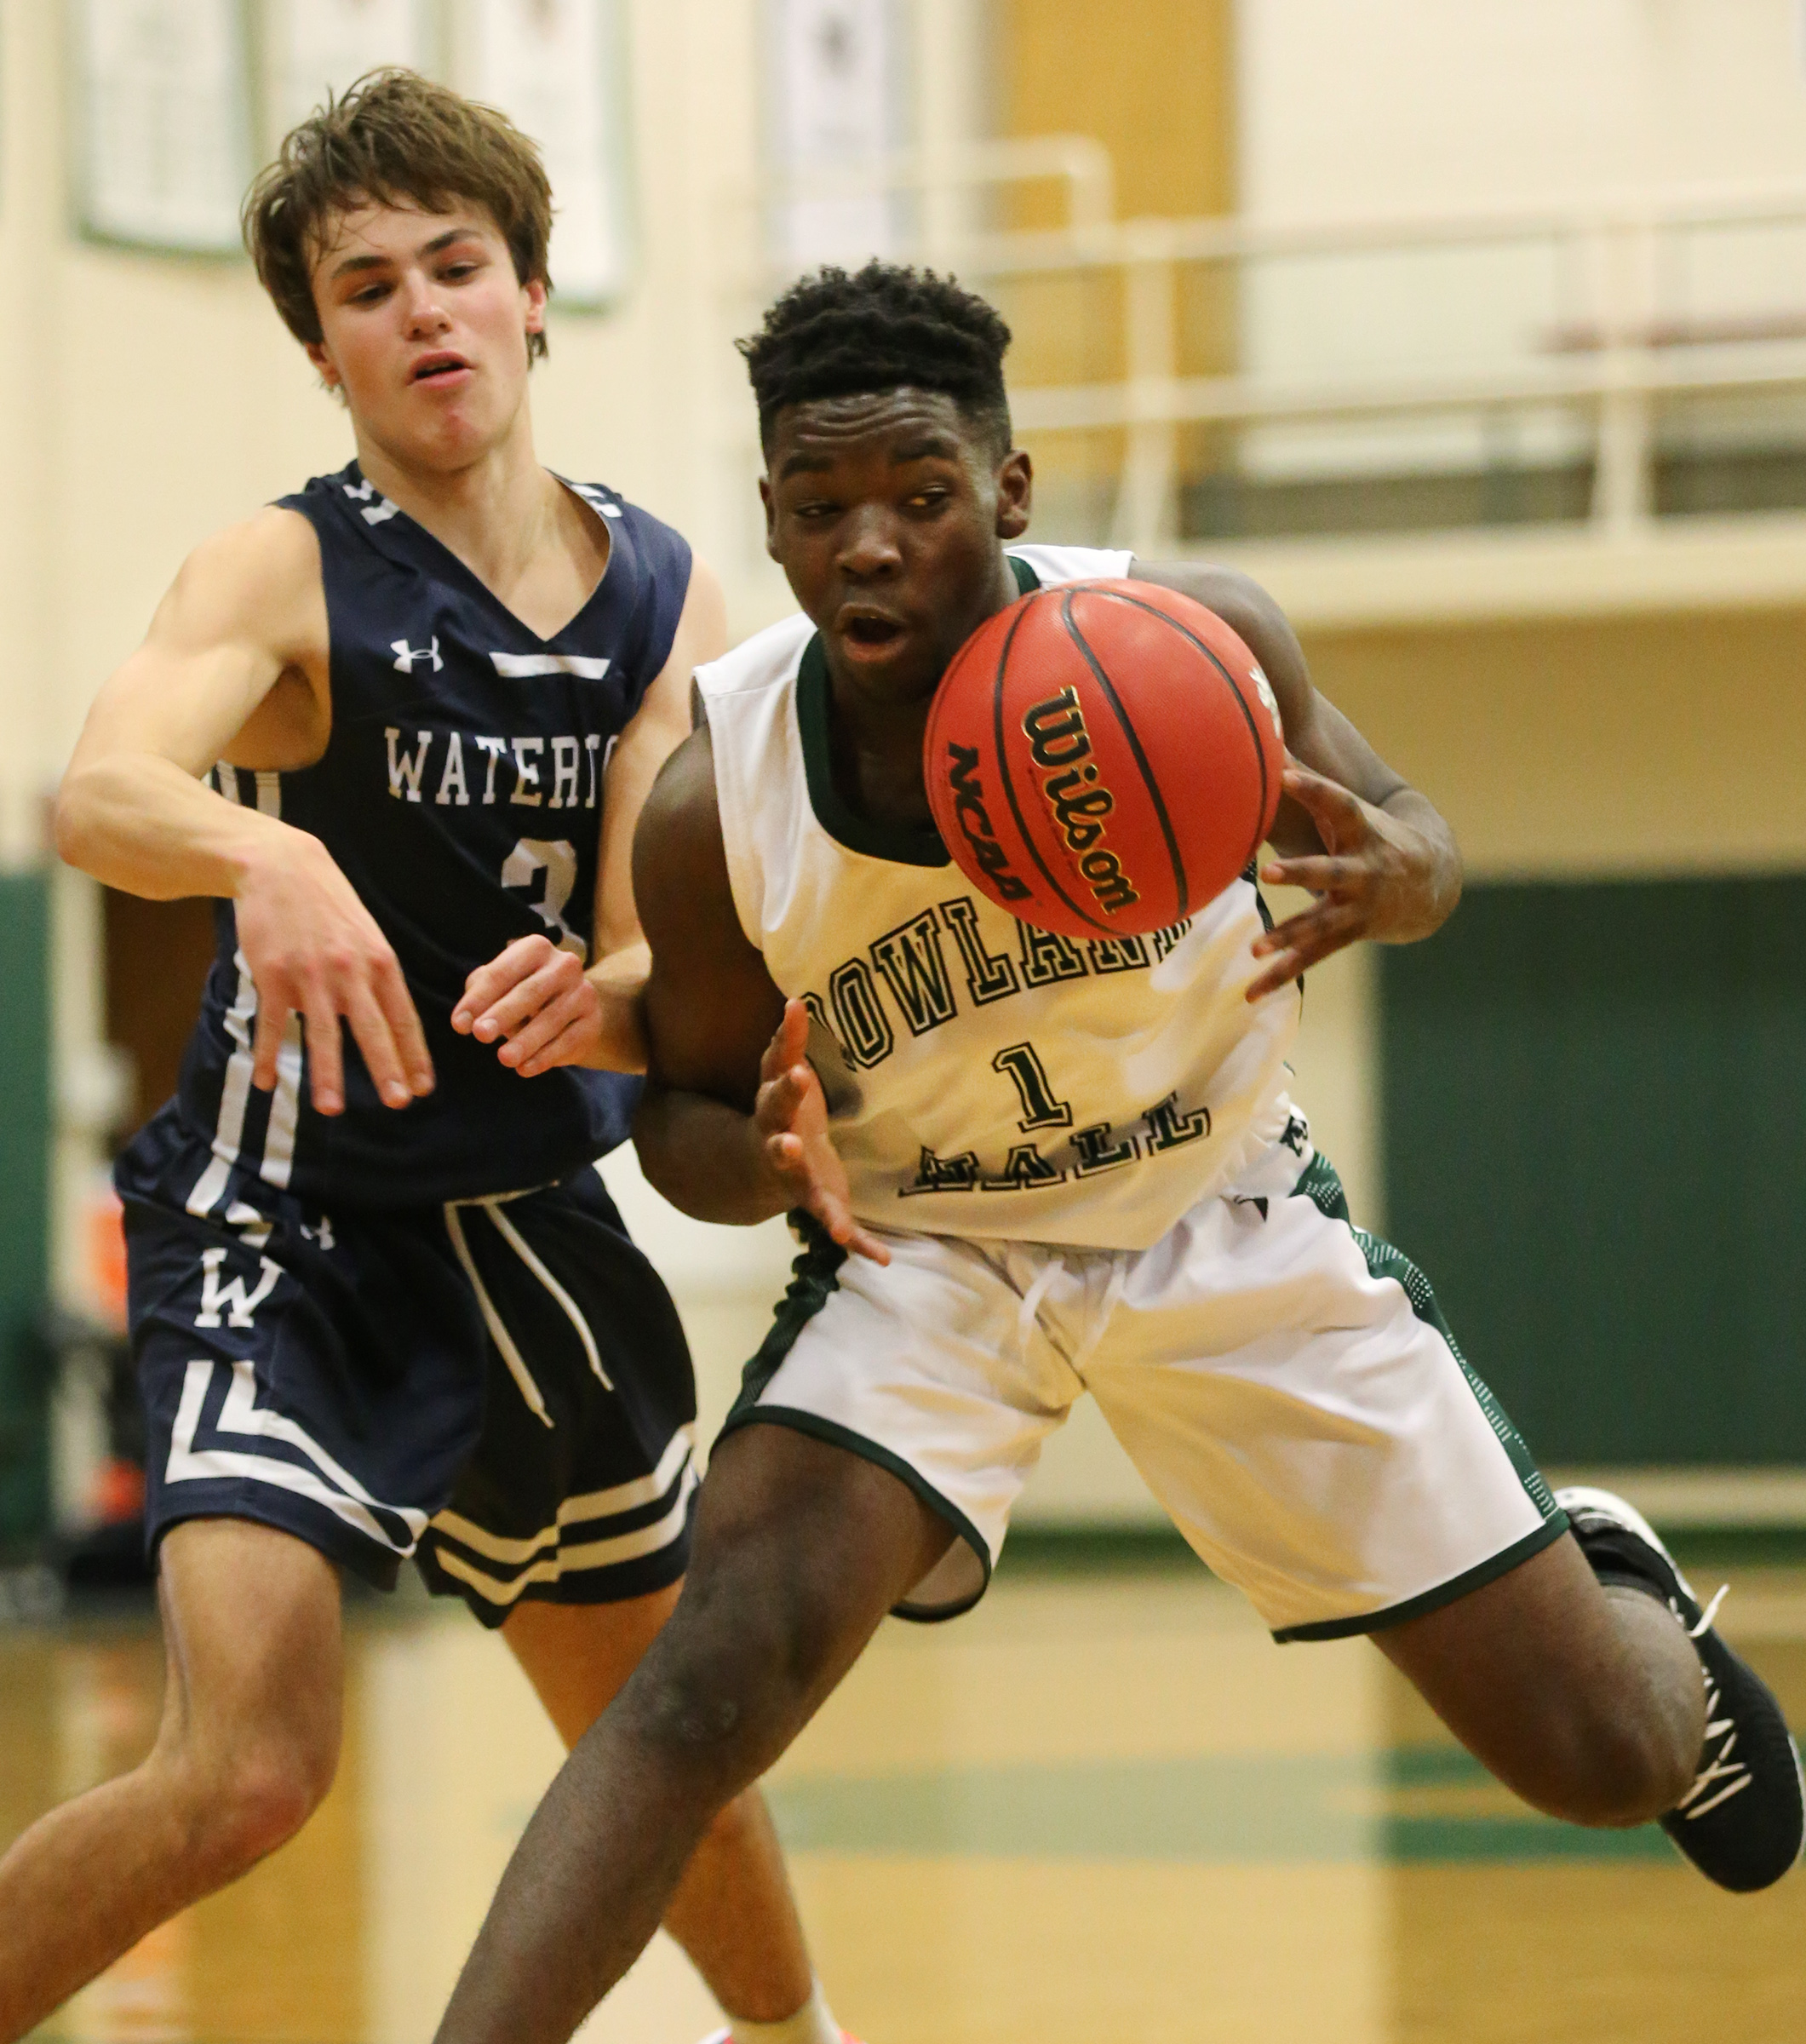 Rowland Hall and Waterford play at Rowland Hall in Salt Lake City on Wednesday, Jan. 15, 2020.